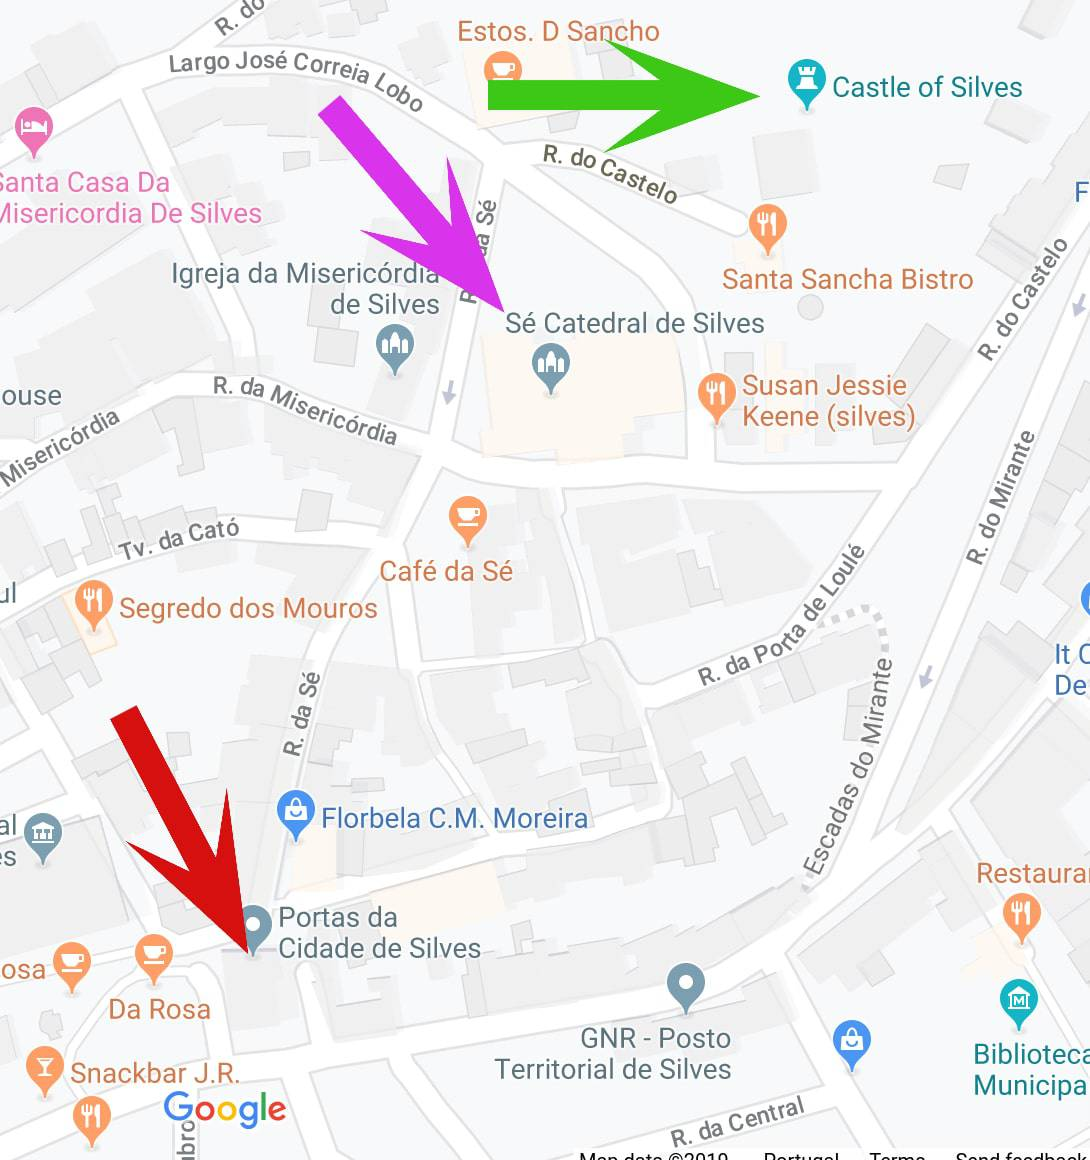 Map showing the Turret of the Cite Gate in Silves